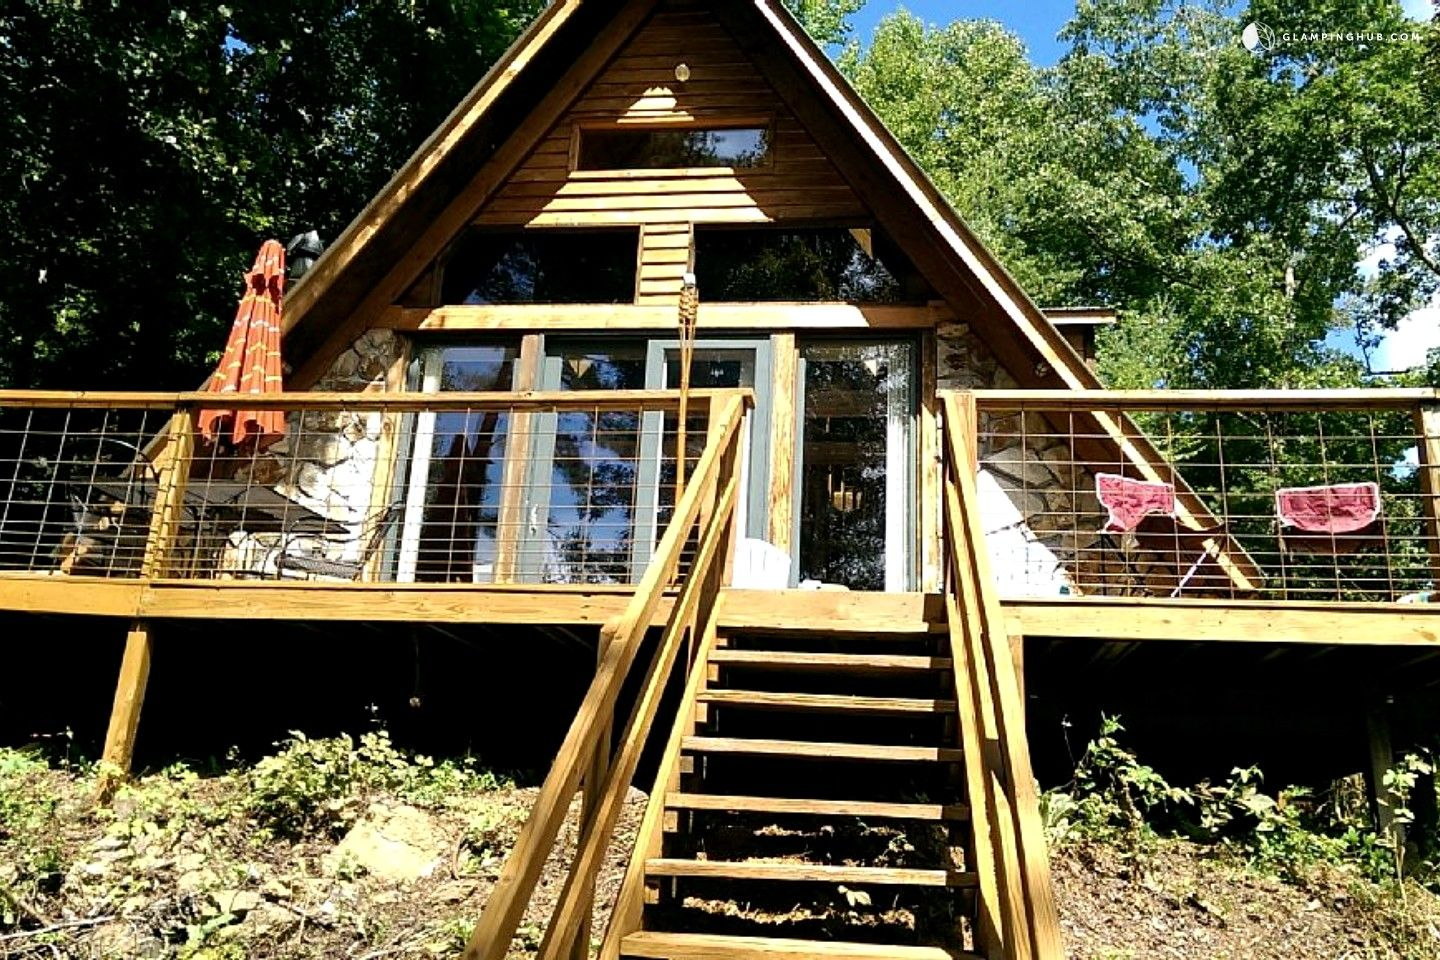 Superieur A Frame Cabin Rental With Private Dock On Watauga Lake Near Johnson City,  Tennessee